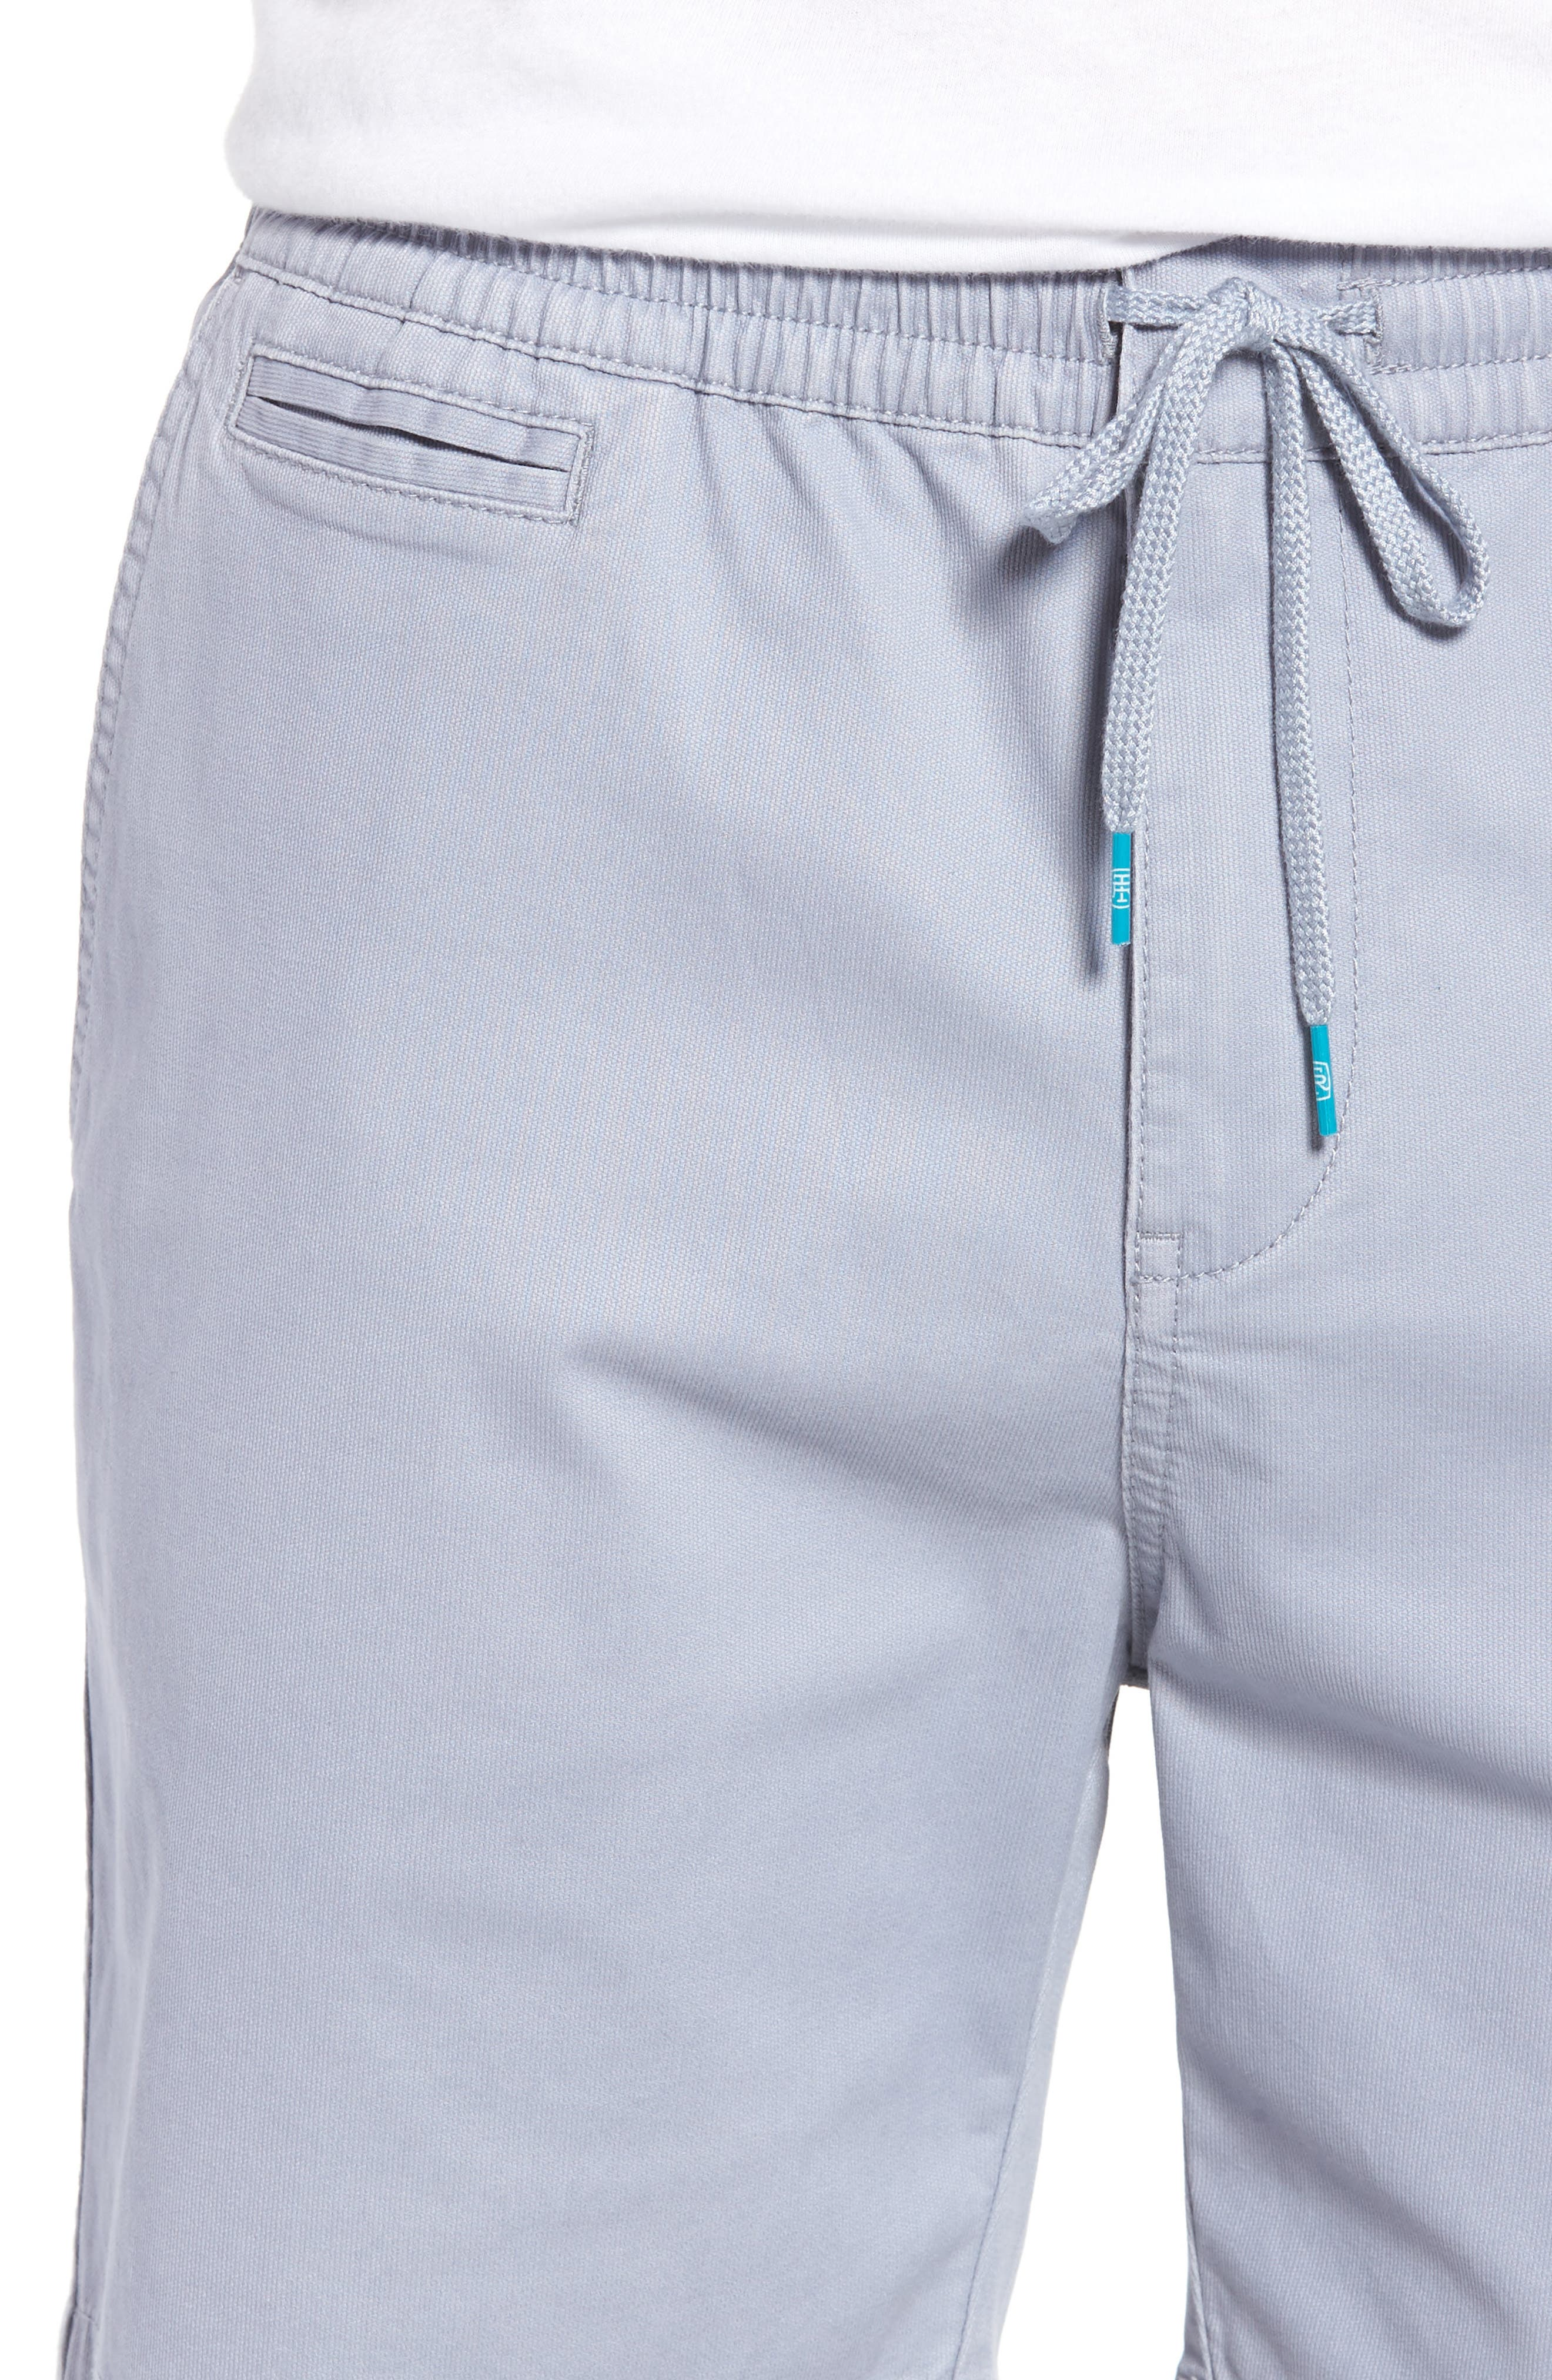 Drawstring Bedford Corduroy Shorts,                             Alternate thumbnail 4, color,                             Silver Blue